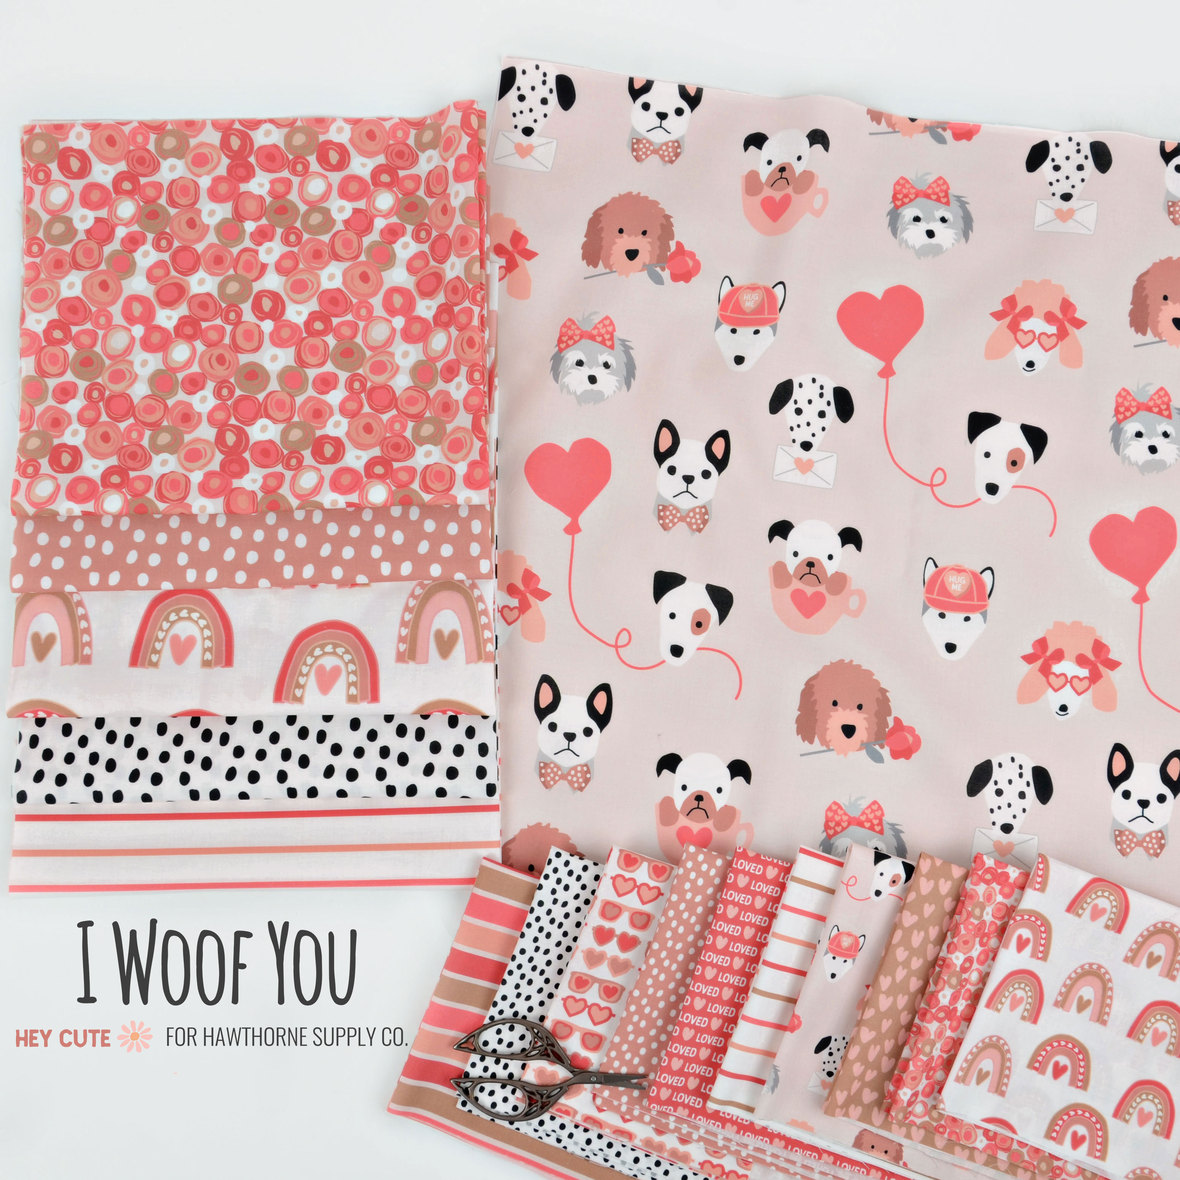 I-Woof-You-Valentine s-Day-Fabric-Hey-Cute-Design-for-Hawthorne-Supply-Co